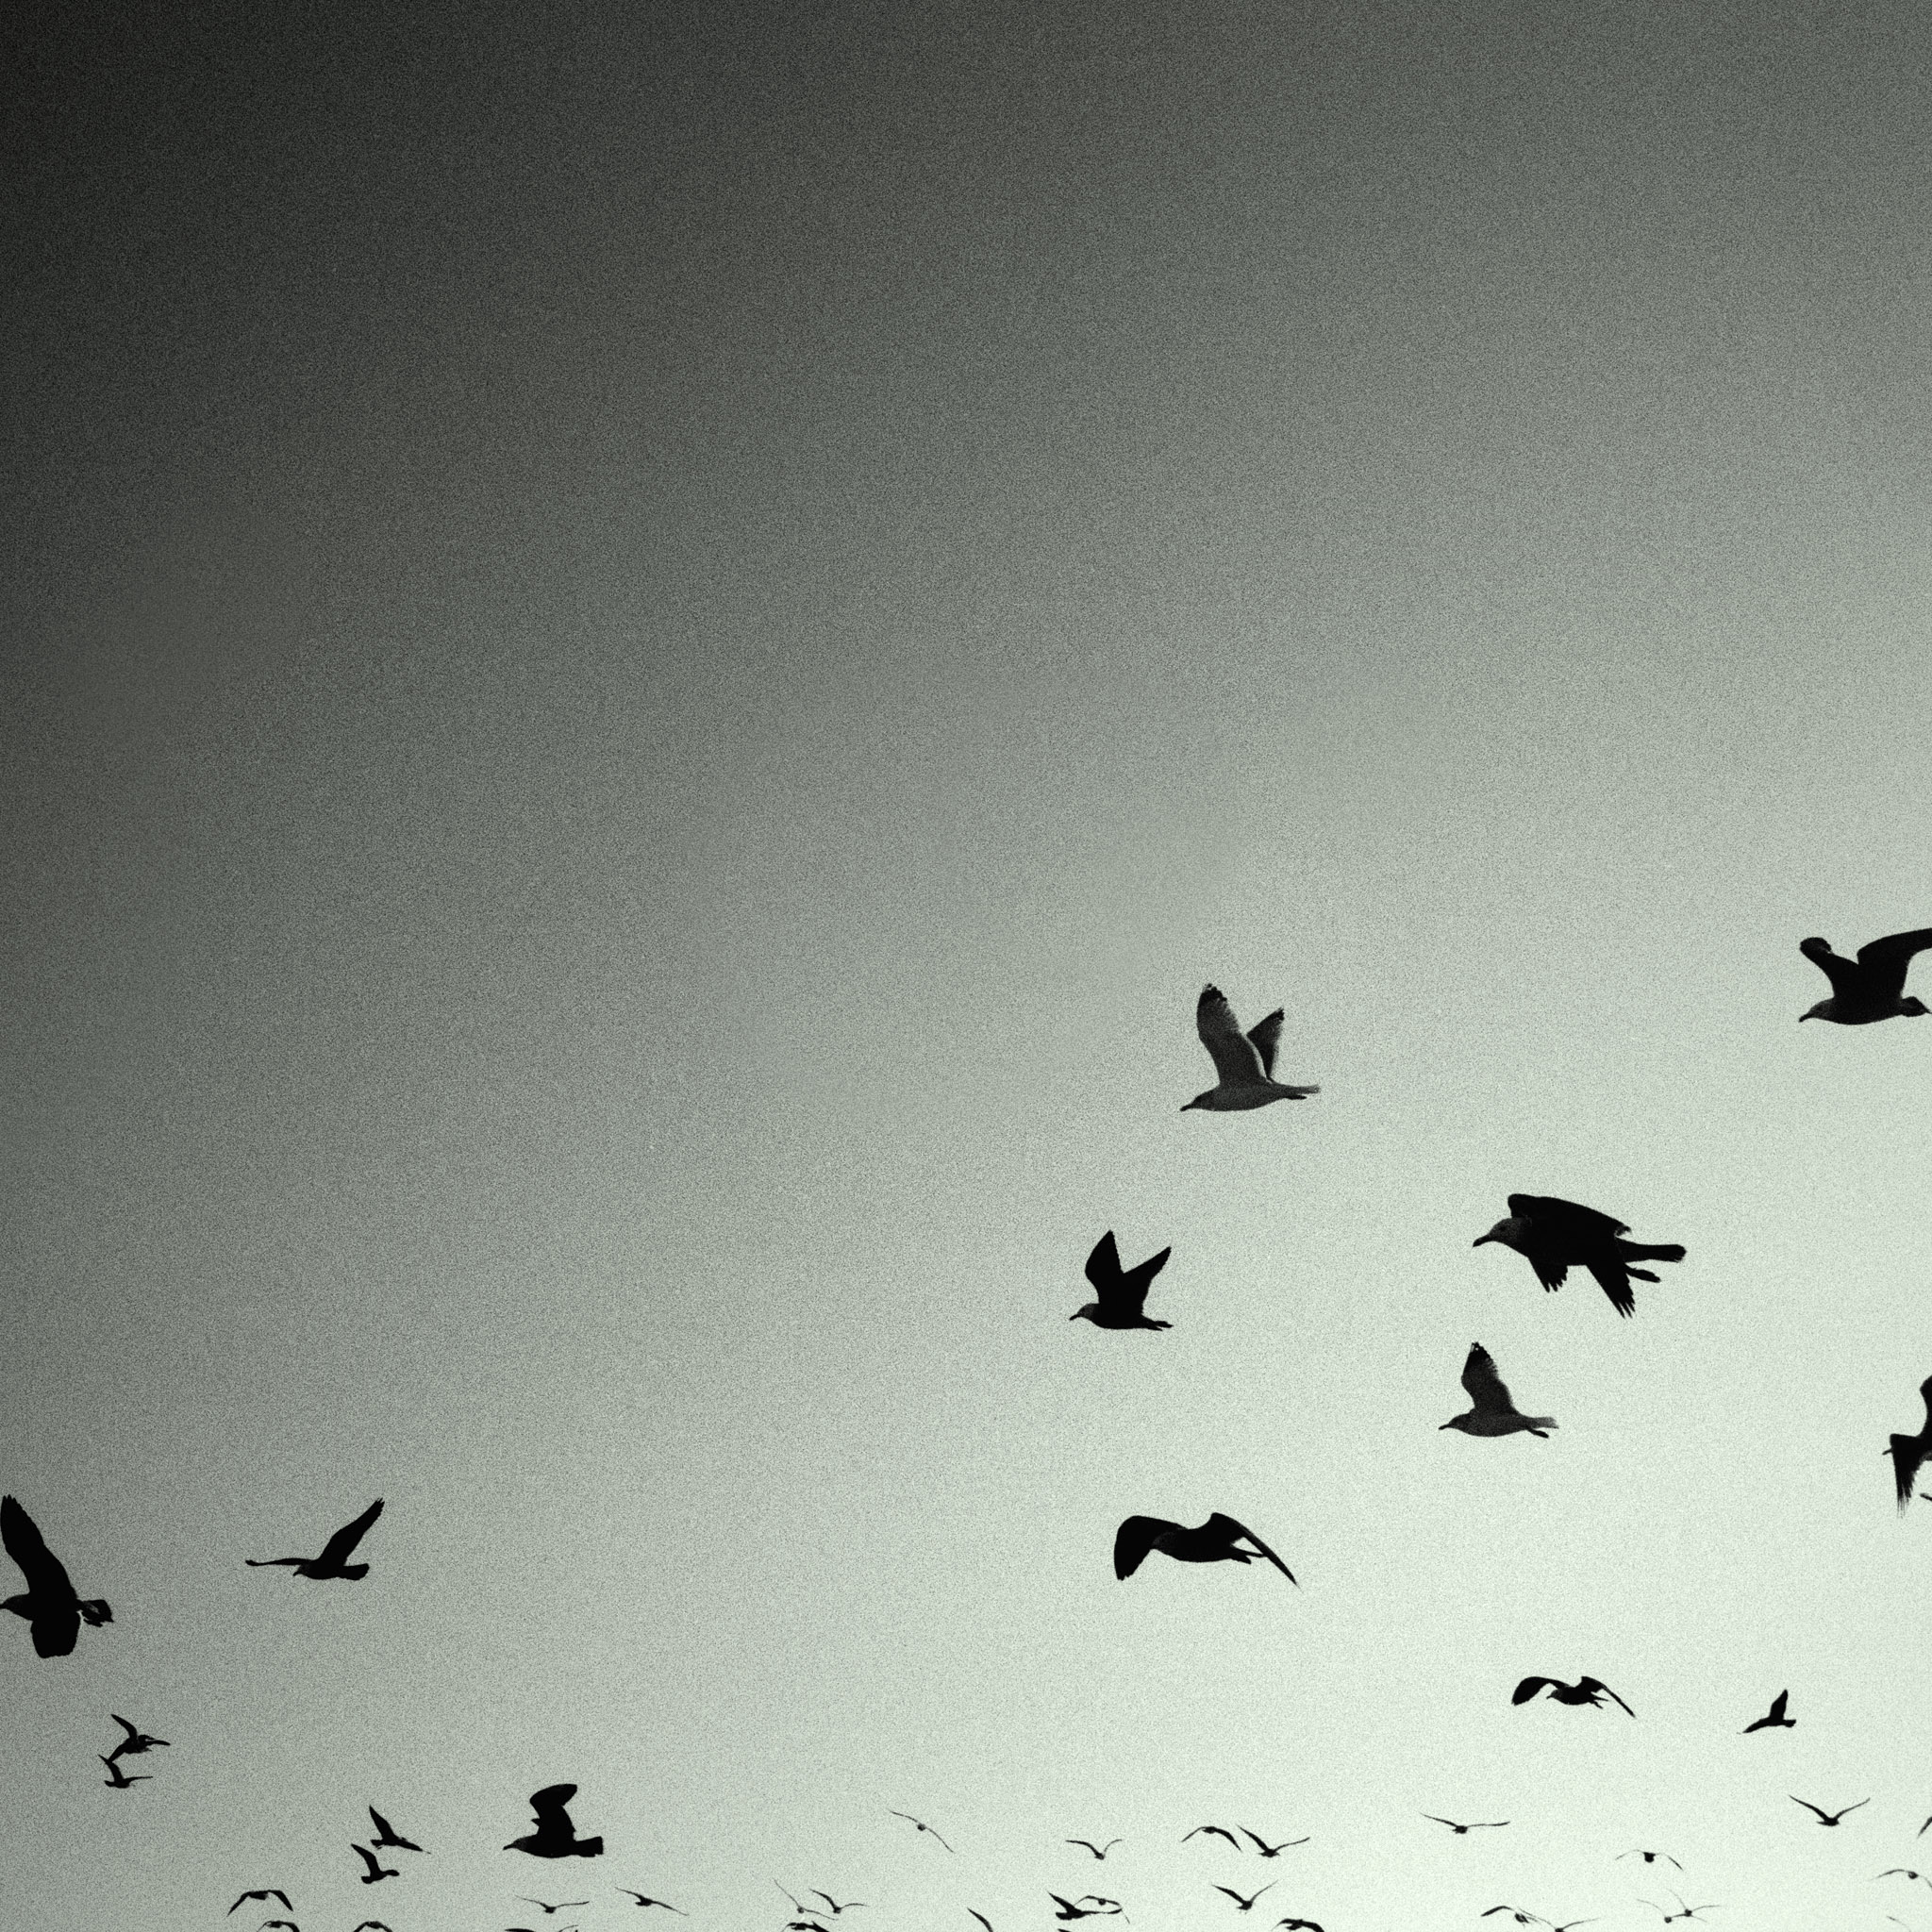 Keywords Birds Flying Background Black And White and Tags